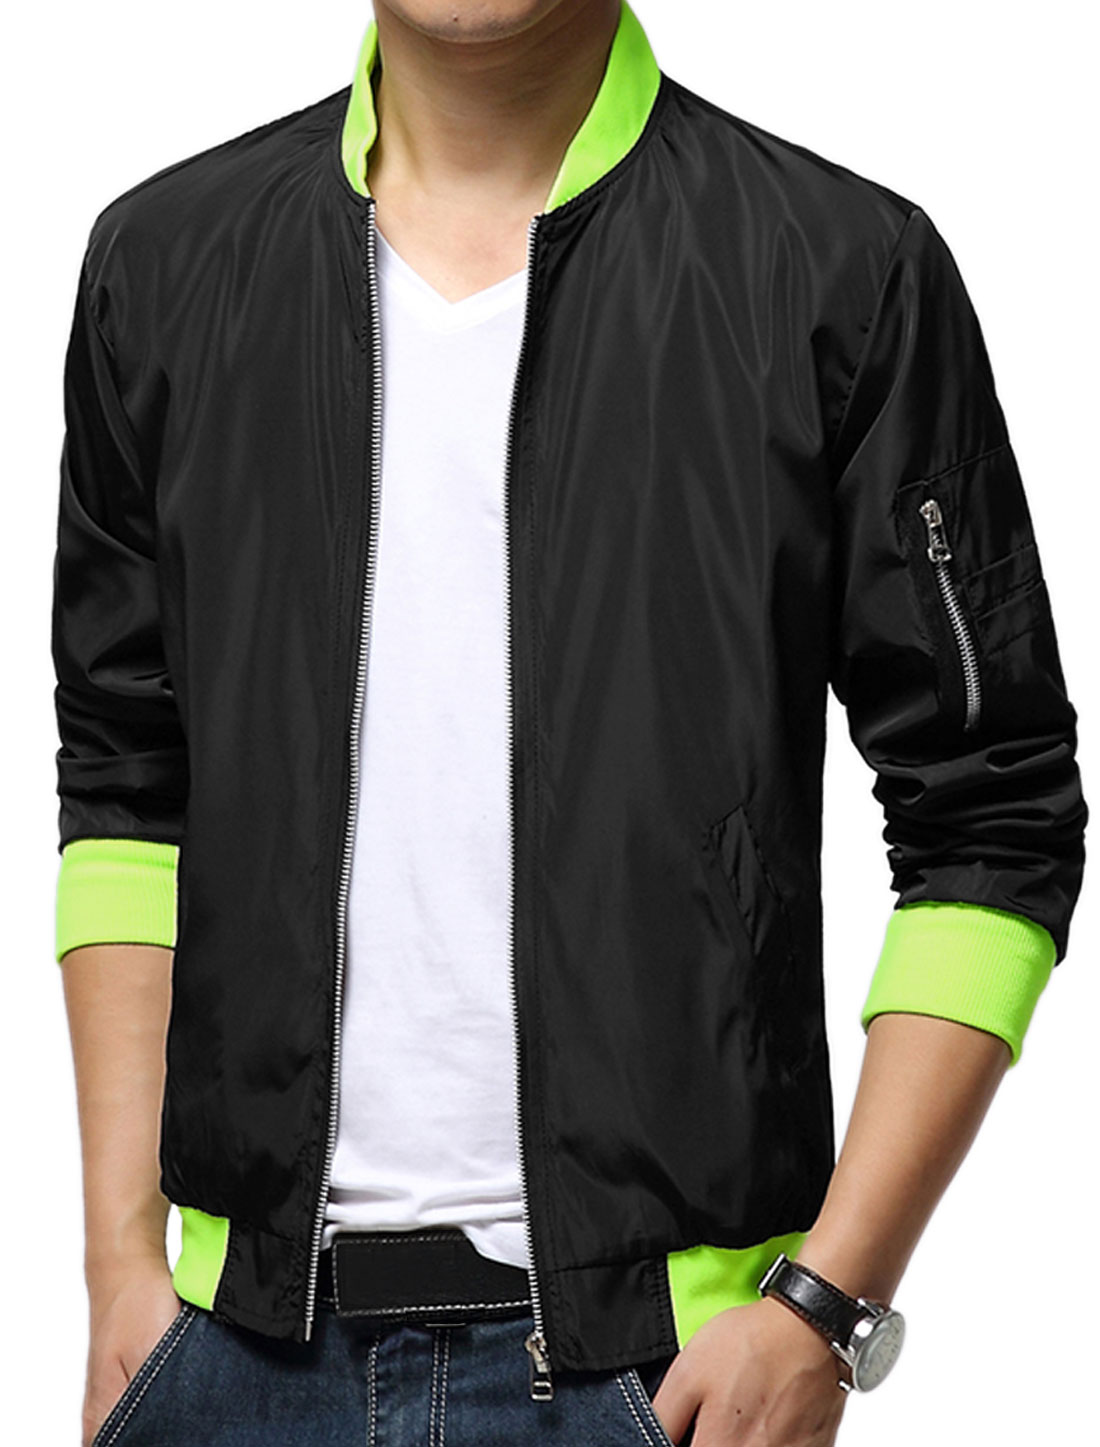 Men Black Zip Closure Front Pockets Long Sleeves Slim Fit Leisure Jacket S